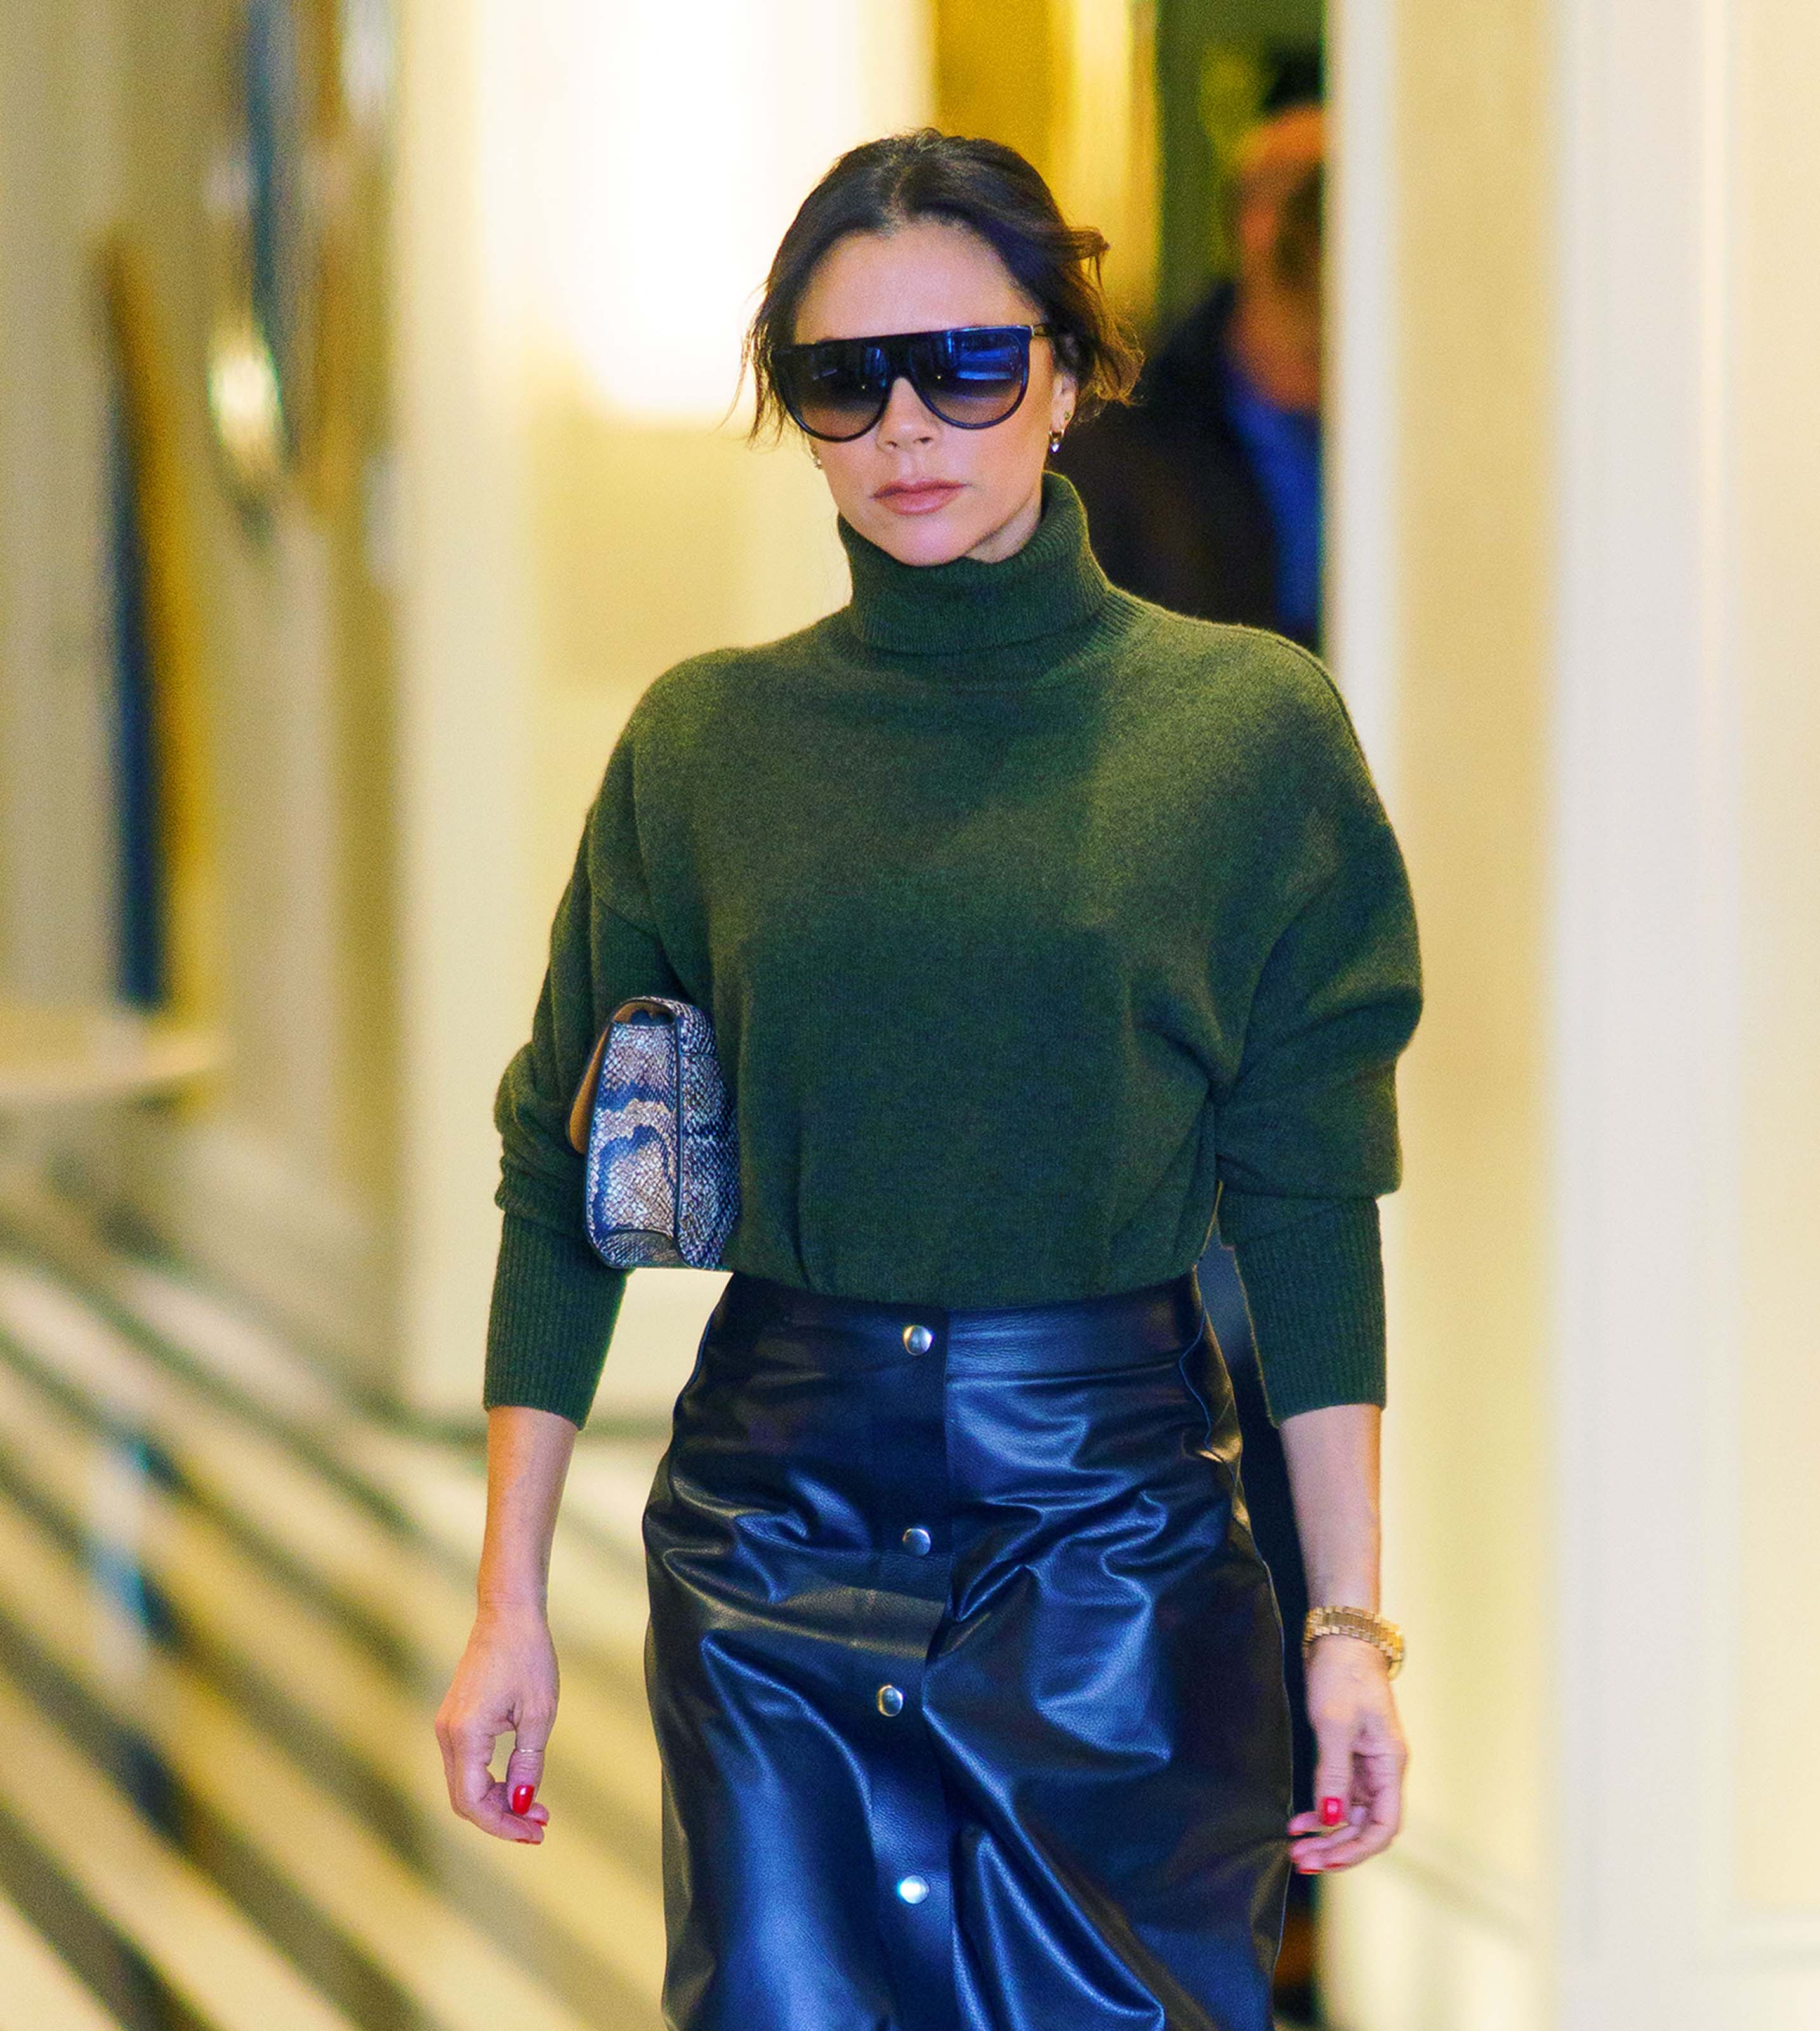 Victoria Beckham goes shopping with her son Brooklyn after lunch